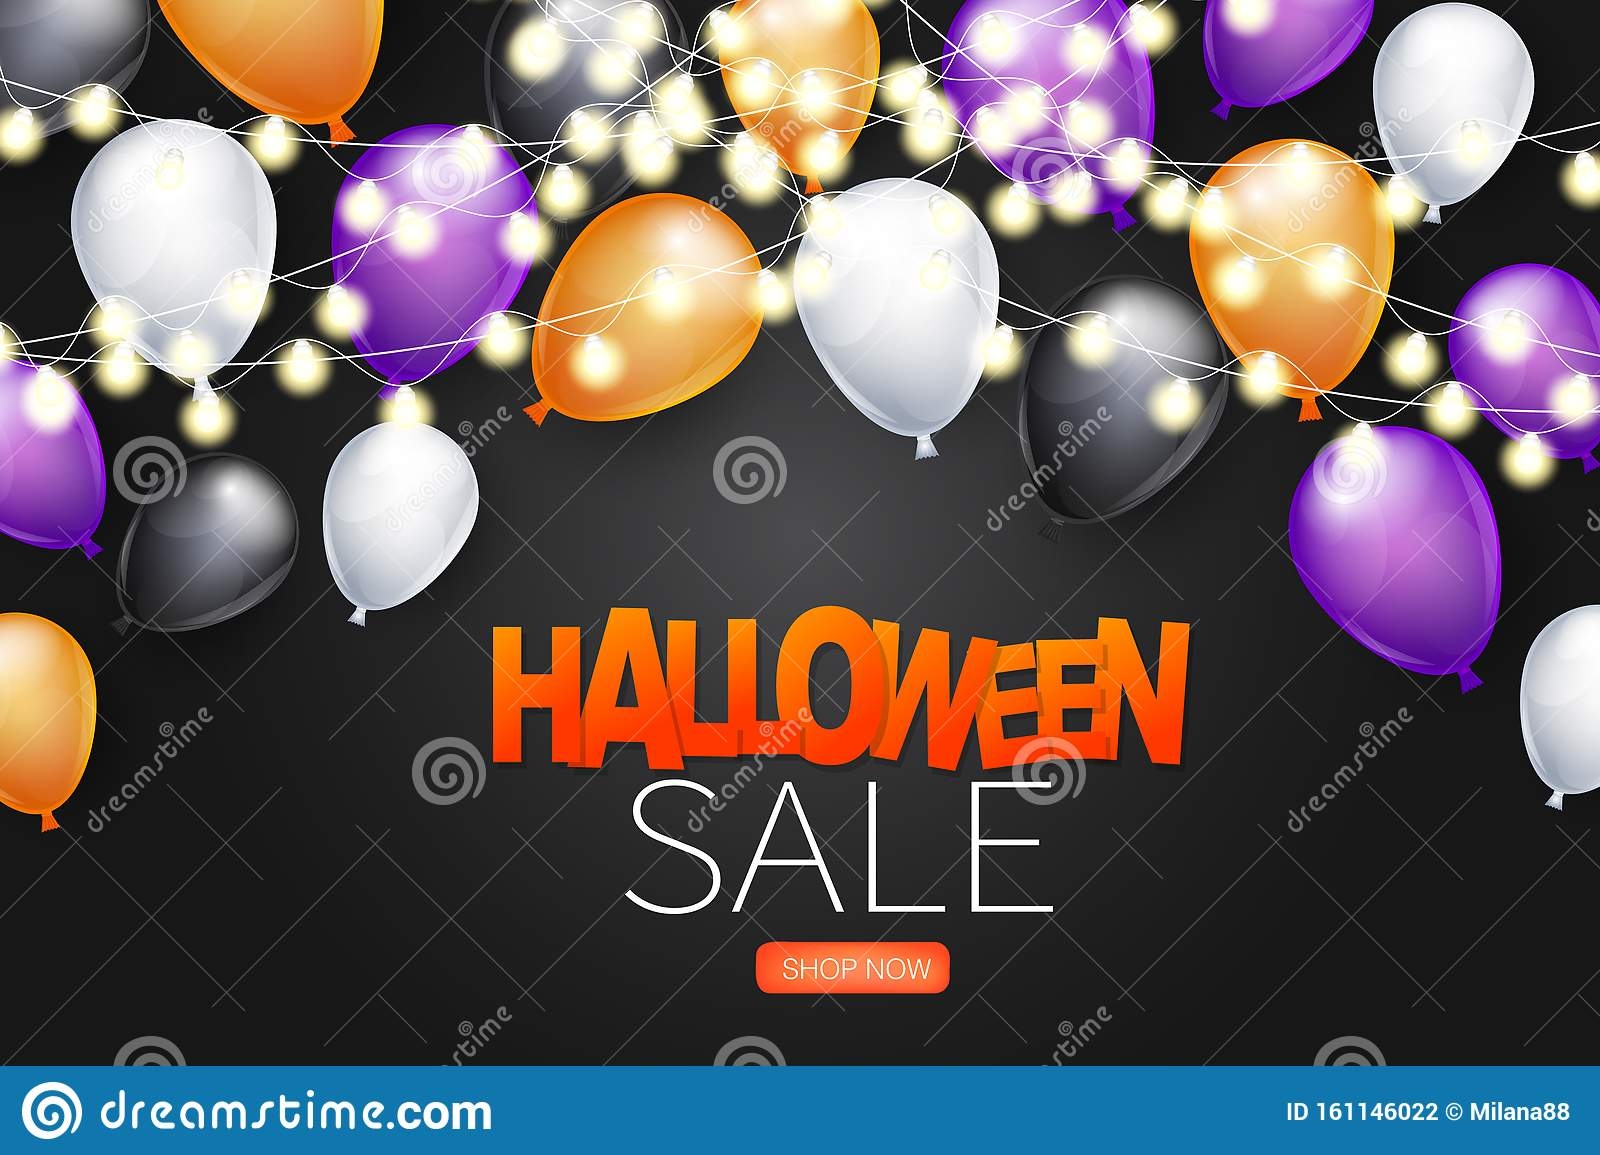 Halloween Sale Background With Black White Purple And Orange Balloons And Glowing Lights Garland Stock Vector Illustration Of Lights Horror 161146022